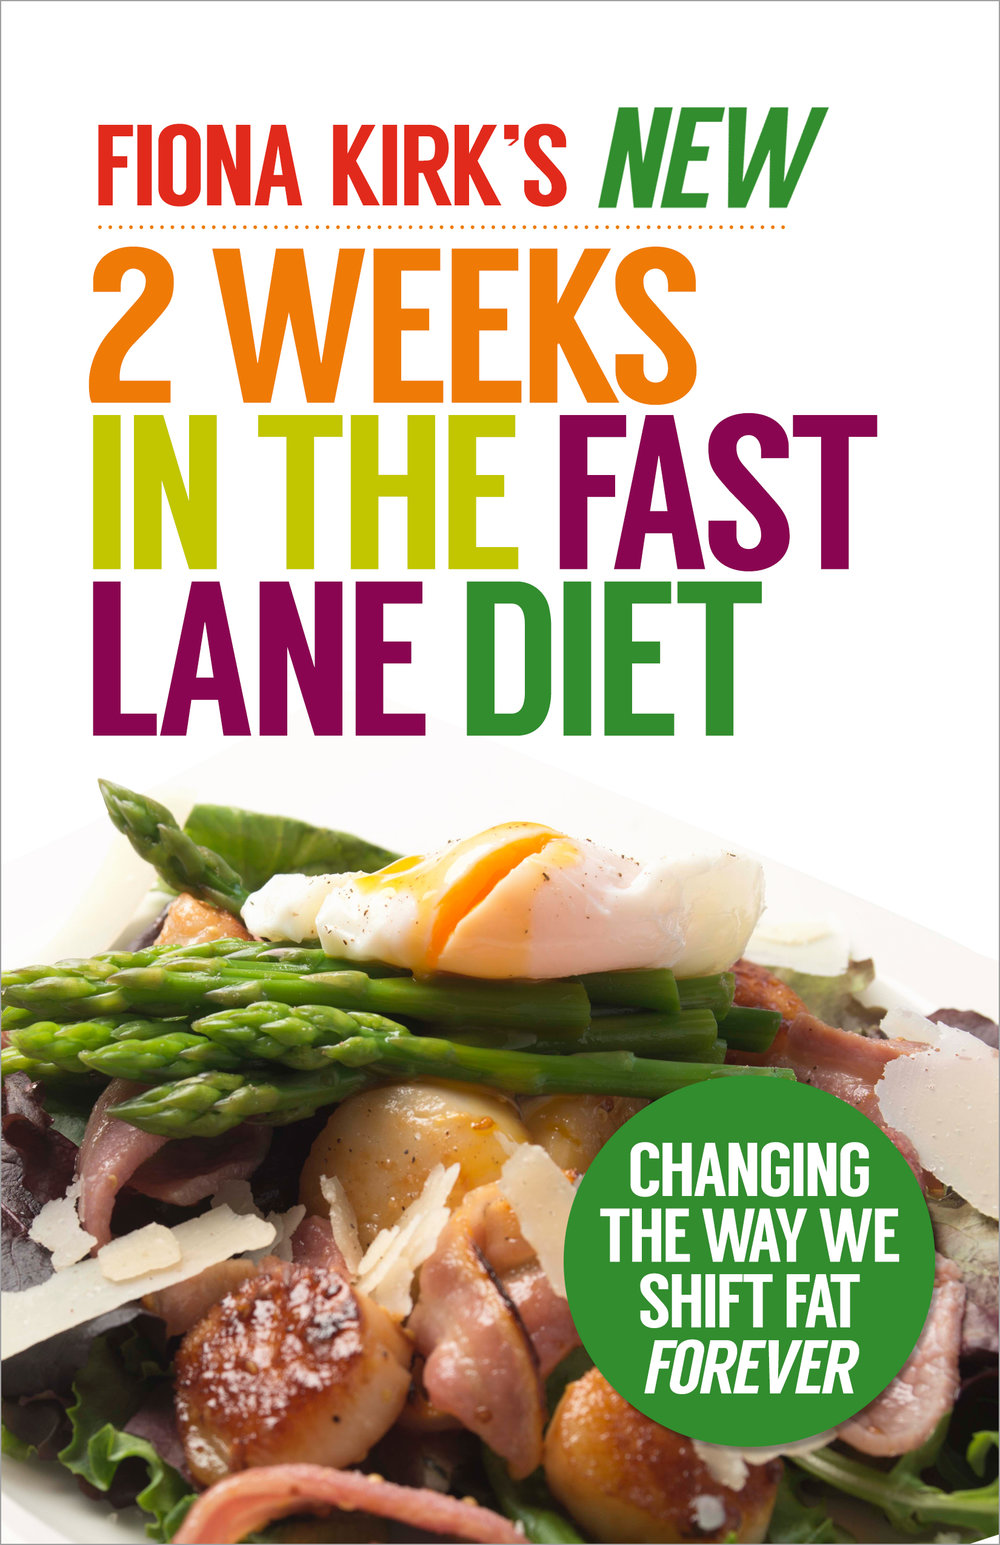 Fiona Kirk's New 2 Weeks in the Fast Lane Diet